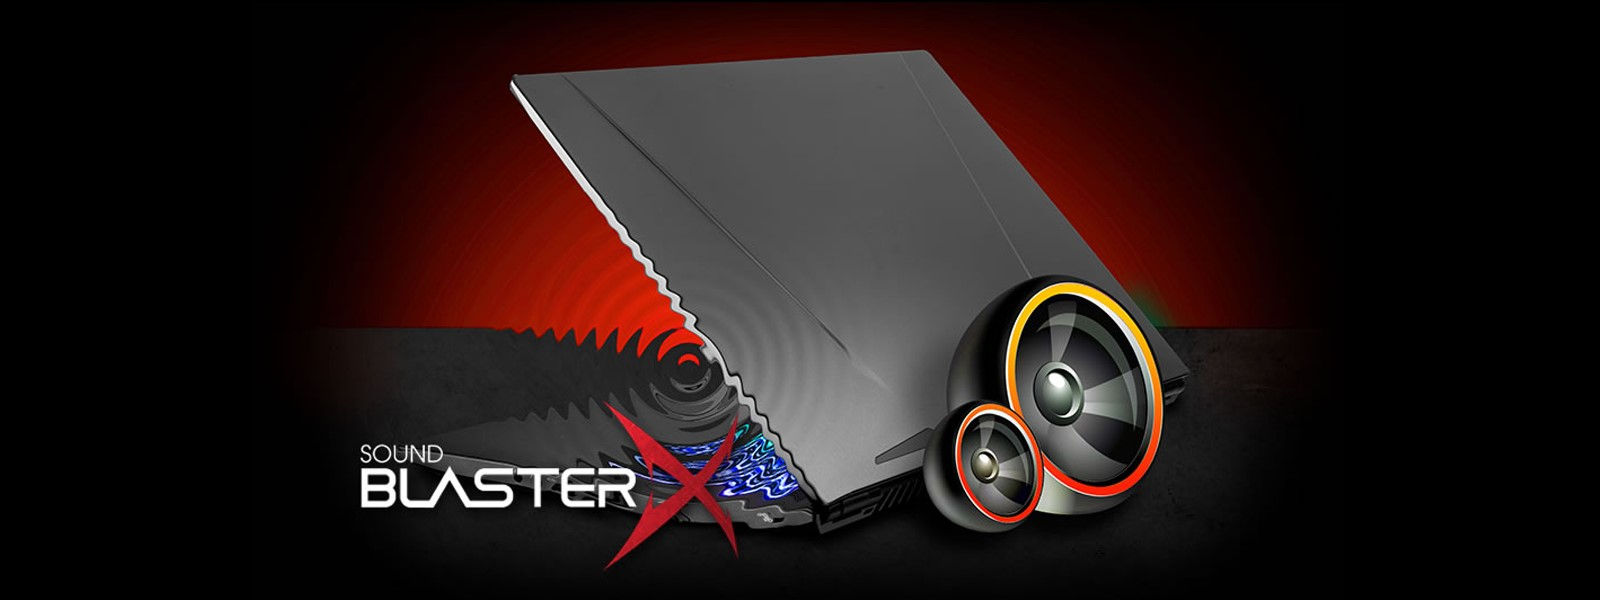 CLEVO-Computer-P970RN-NVIDIA-RTX-2080-Max-Q-Design-Intel-Core-9th-Gen-i7-9750H-Ultra-Slim-Gaming-Laptop-Custom-Notebook-Metal-Chassis-Features-Specification-10